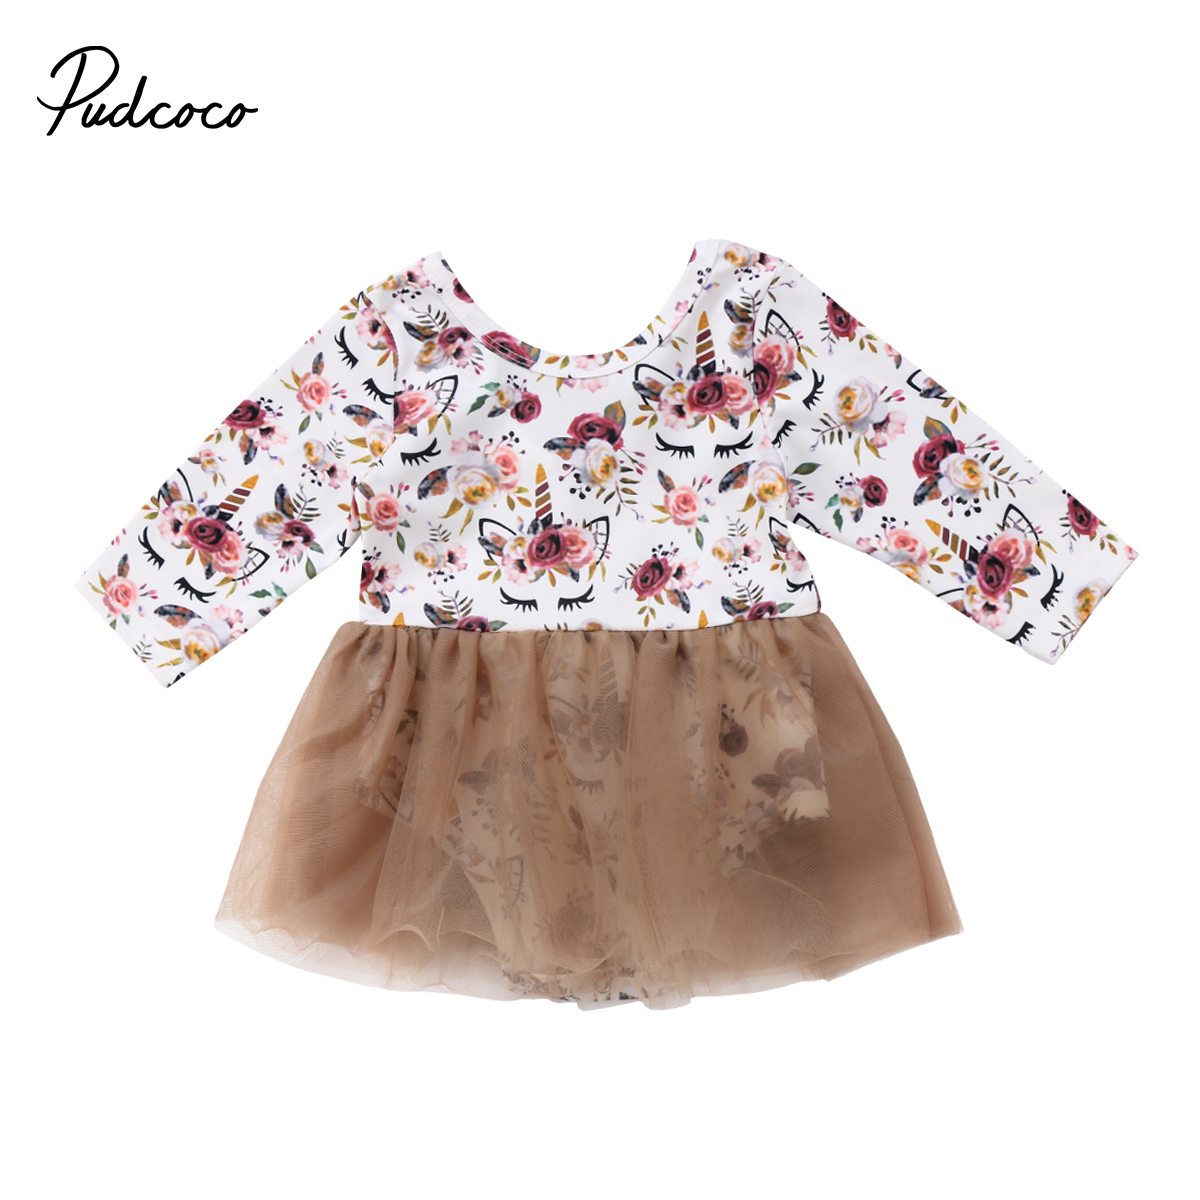 Newborn Toddler Baby Girls Cute Unicorn Floral Romper Bodysuit Tulle Dress Clothes Costumes 0-3T 2pcs set newborn floral baby girl clothes 2017 summer sleeveless cotton ruffles romper baby bodysuit headband outfits sunsuit